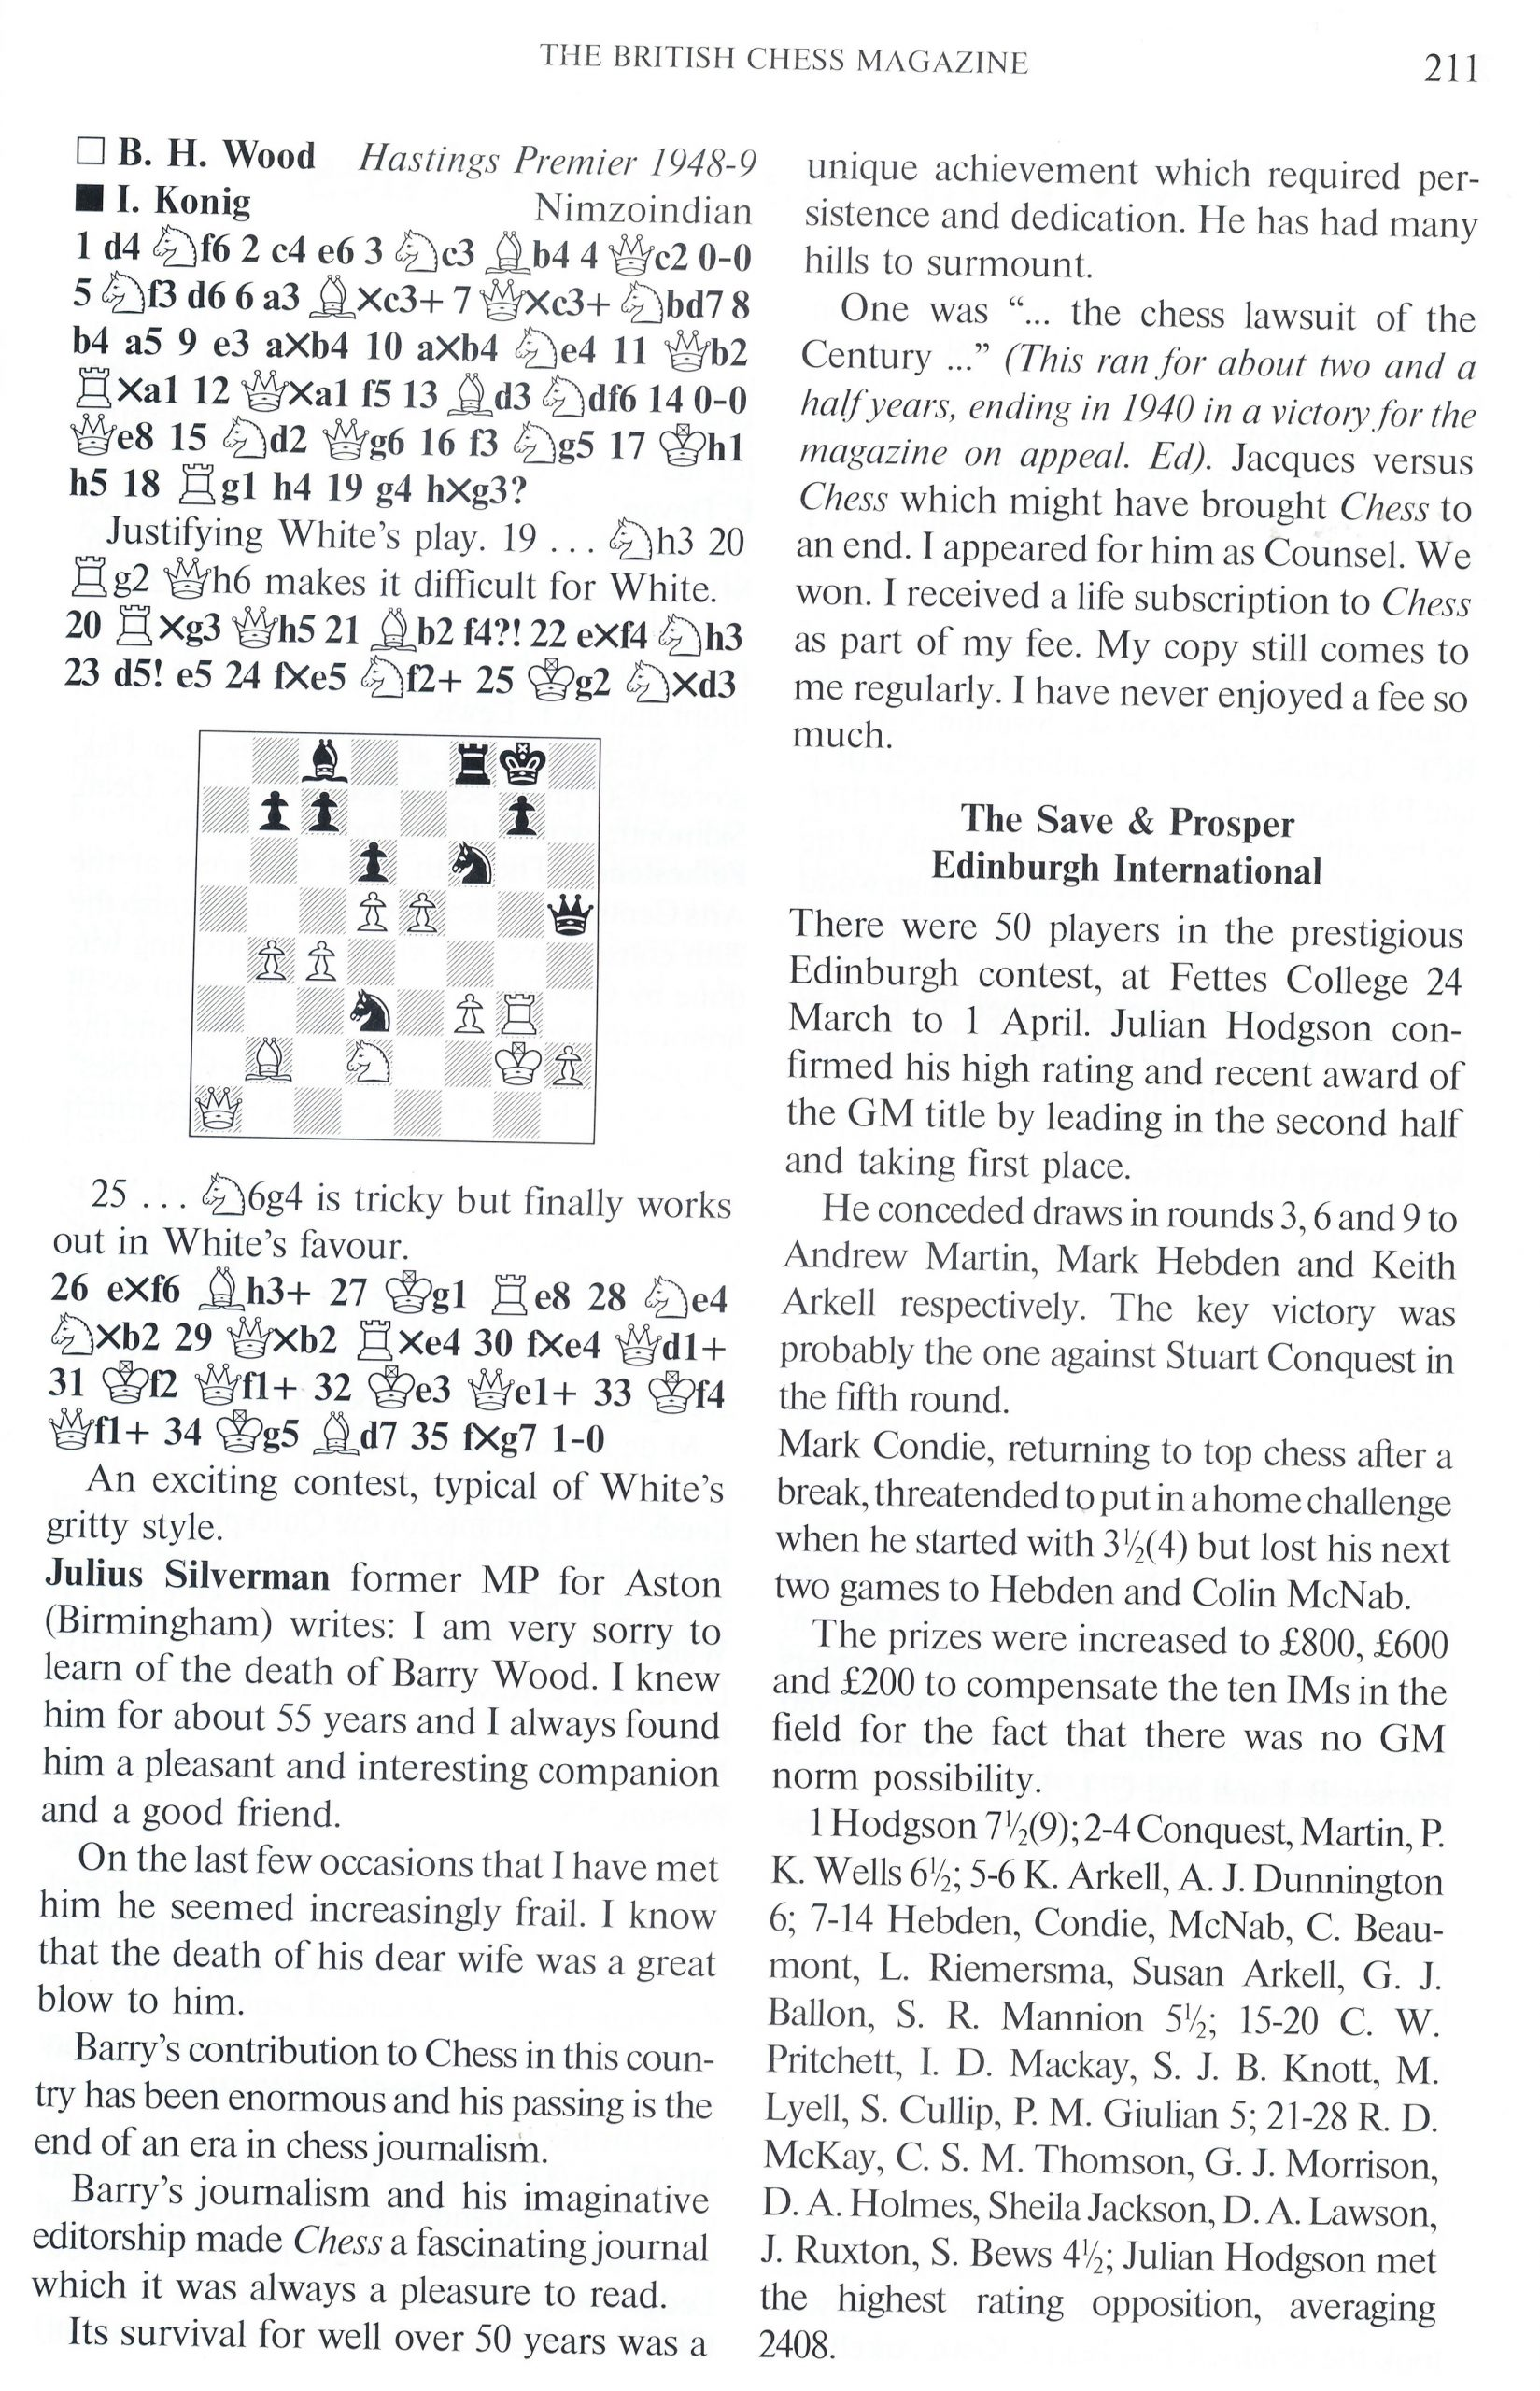 British Chess Magazine, Volume CX (109), Number 5 (May), page 211